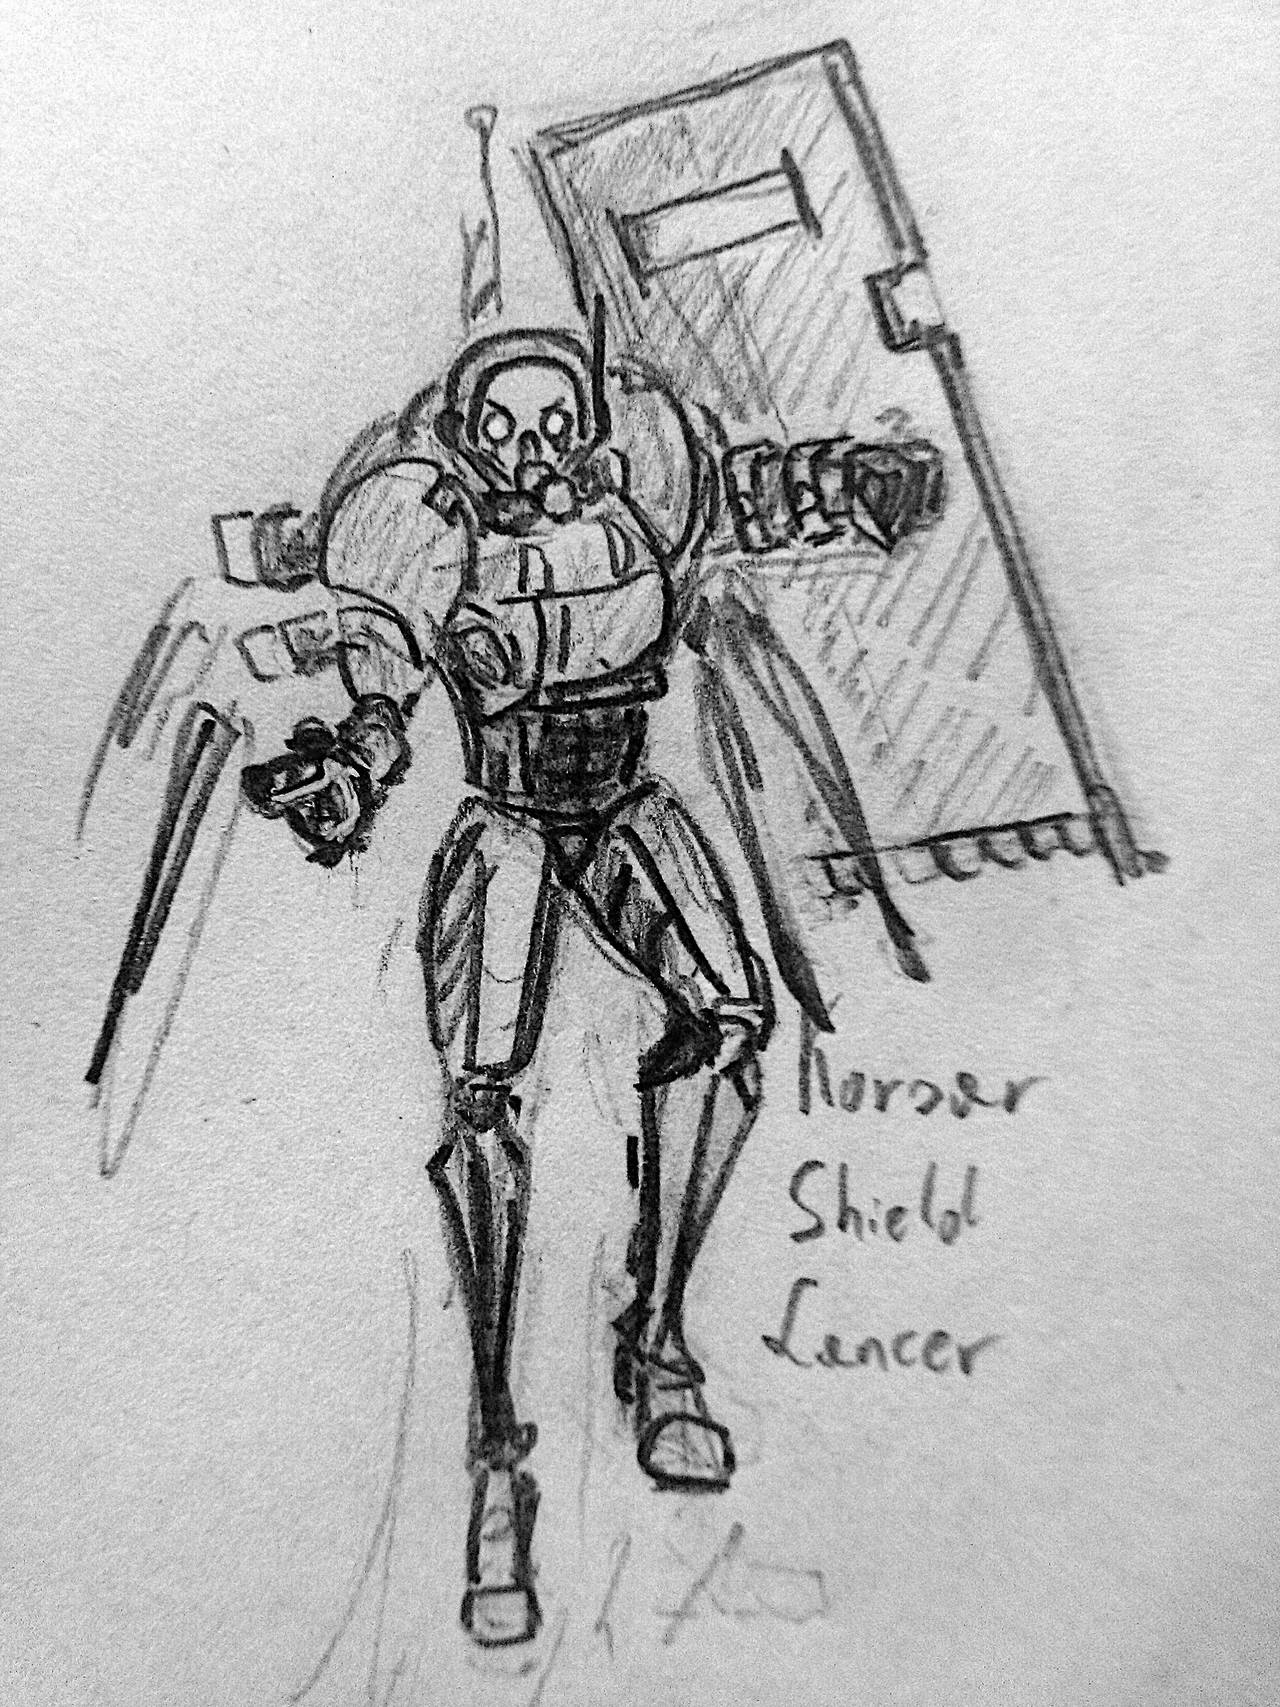 korsar_shield_lancer_2_0_by_huginthecrow